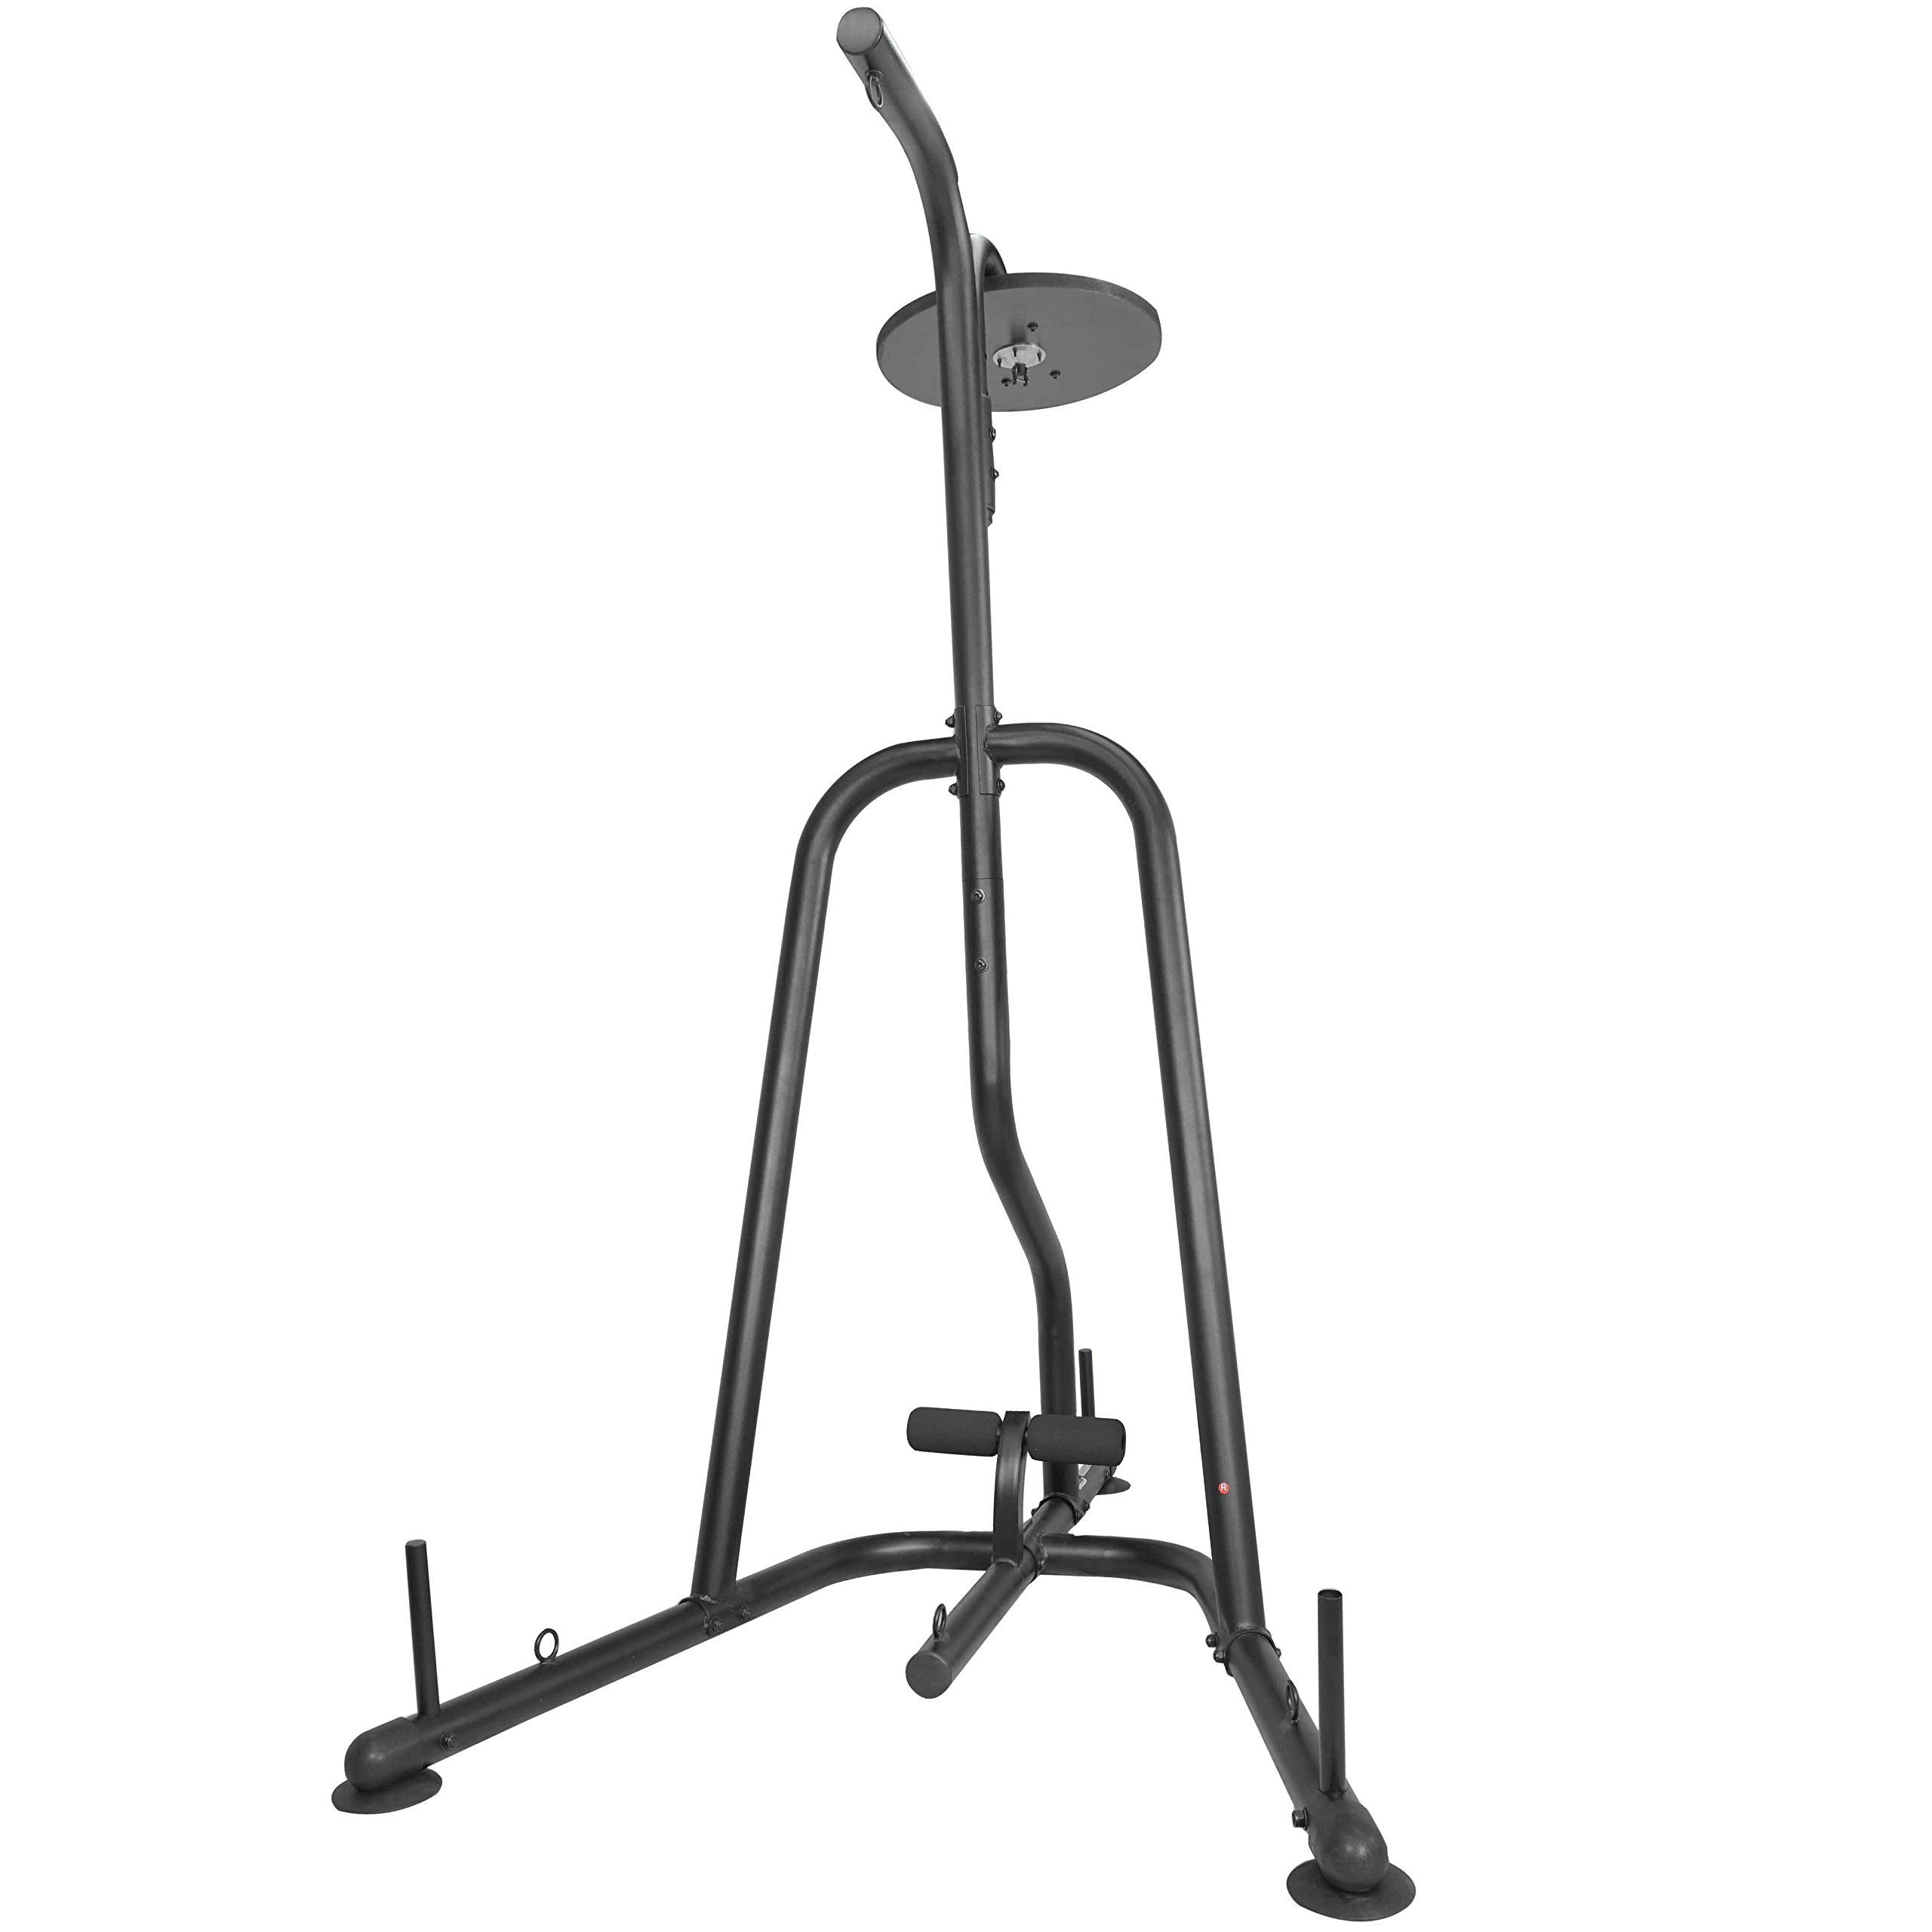 Titan Dual Station Boxing Stand For Speed & Heavy Bag MMA Kick Punching Training by Titan Fitness (Image #3)